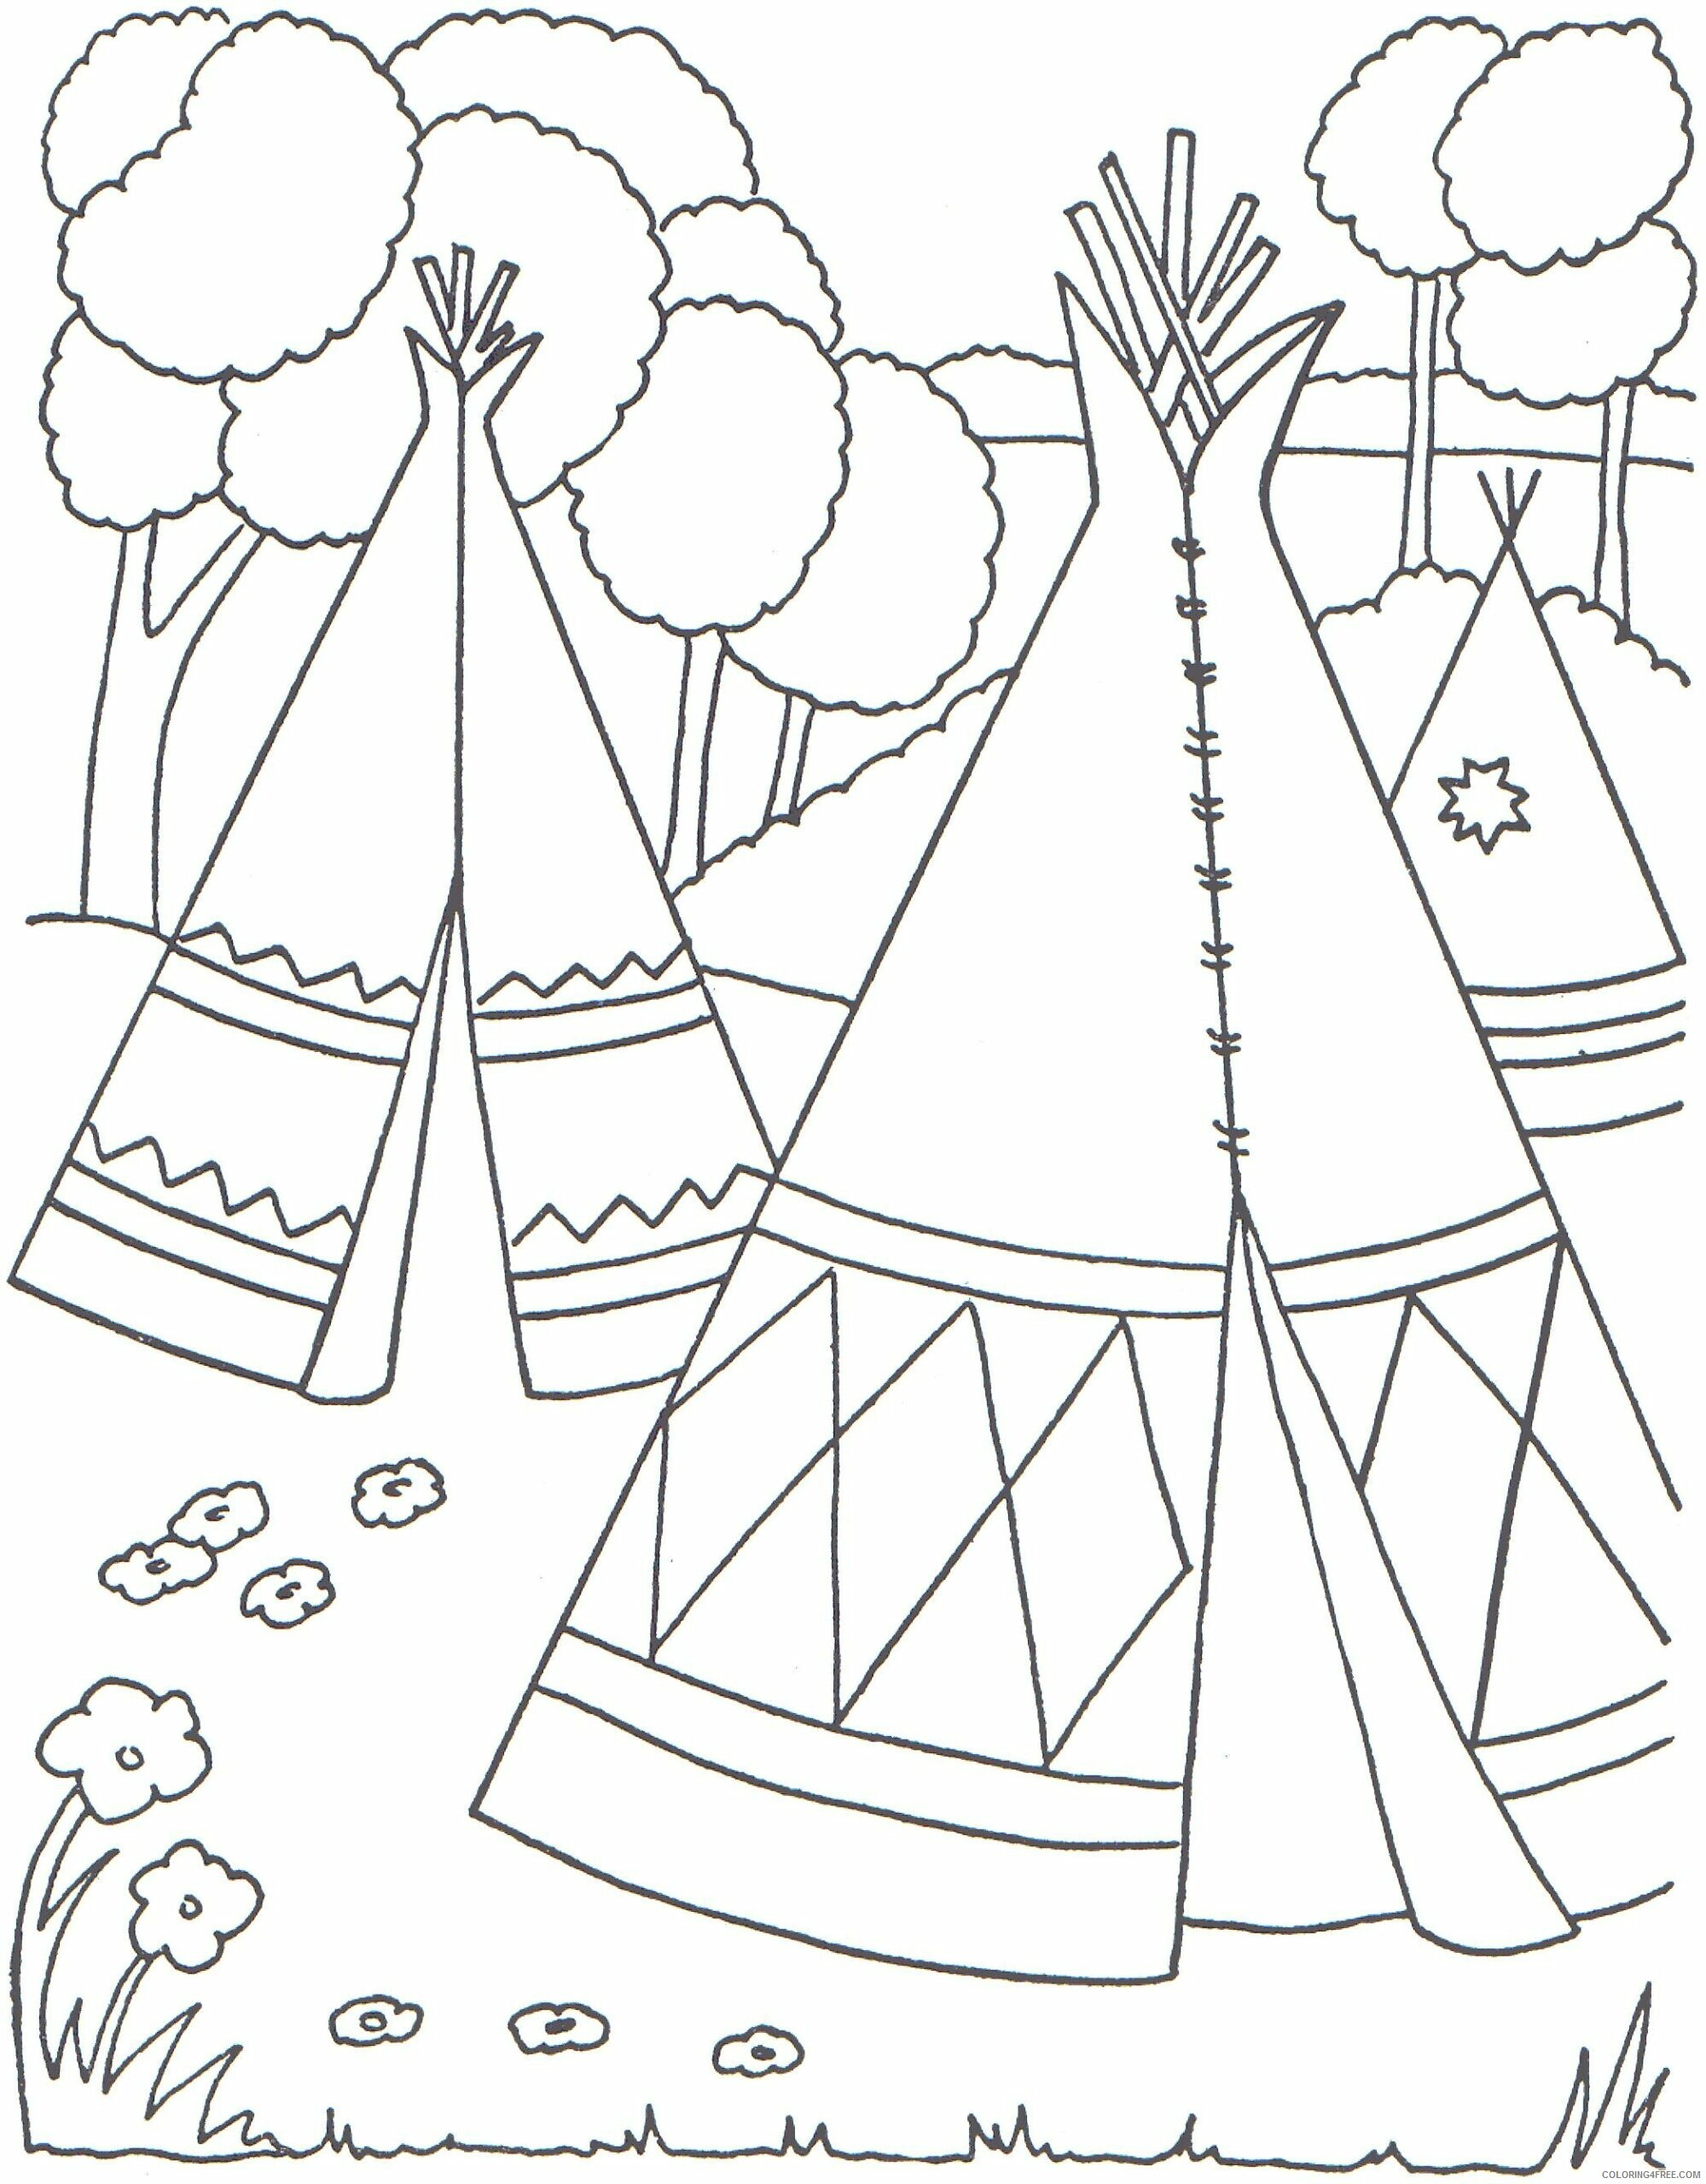 Indian Coloring Pages indianer dG7Mh Printable 2021 3538 Coloring4free